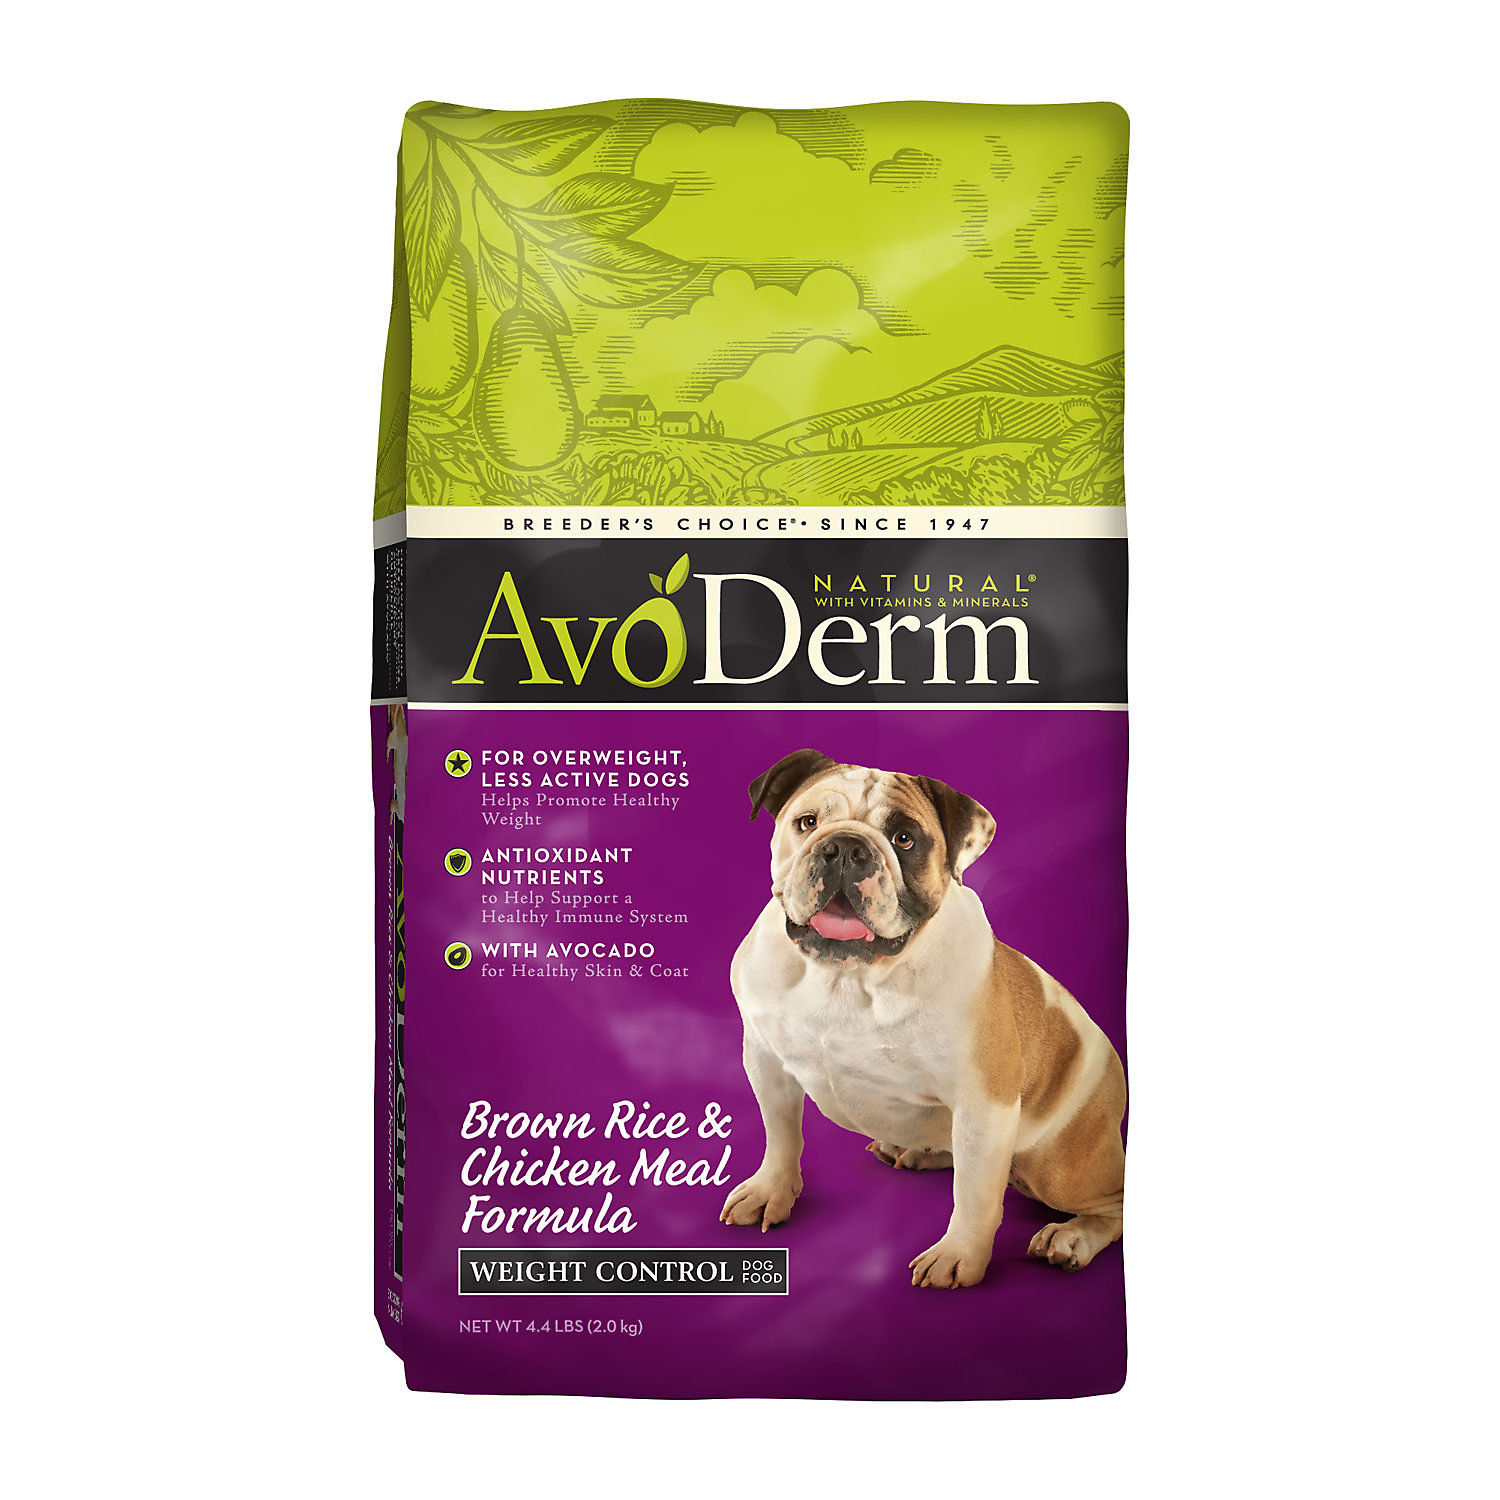 Avoderm Natural Brown Rice Chicken Meal Formula Weight Control Adult Dog Food 4.4 Lbs. 4.4 Lb Bag